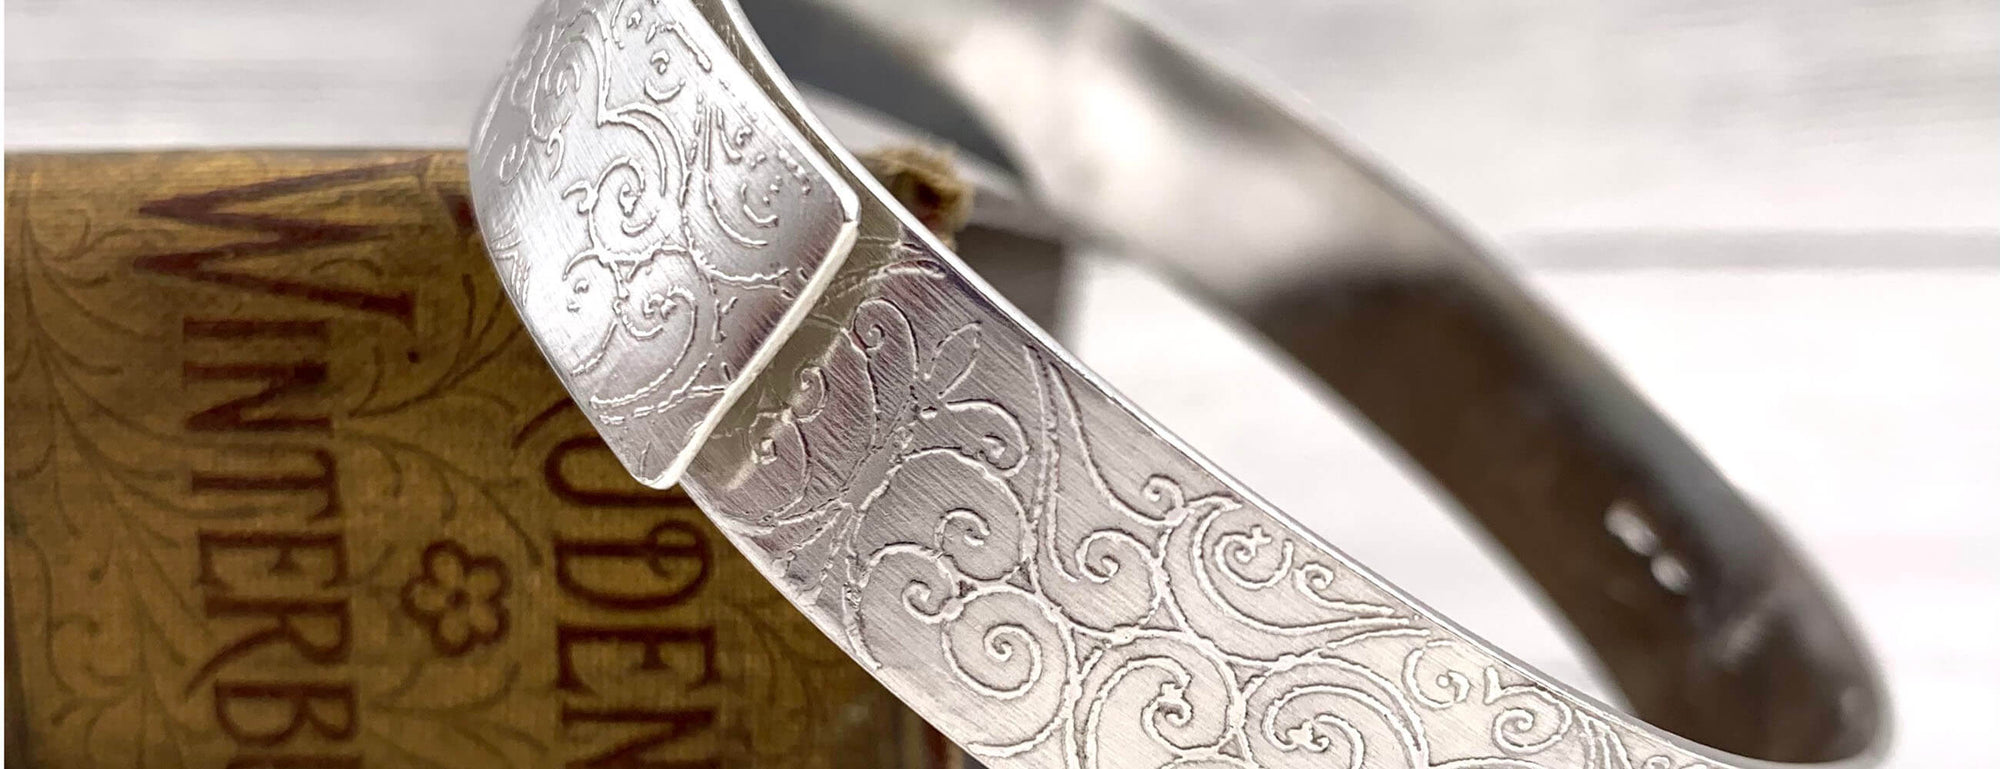 Anna Roebuck Etched Aluminium Cuffs, unique British gifts brought to you by Ferrers Gallery